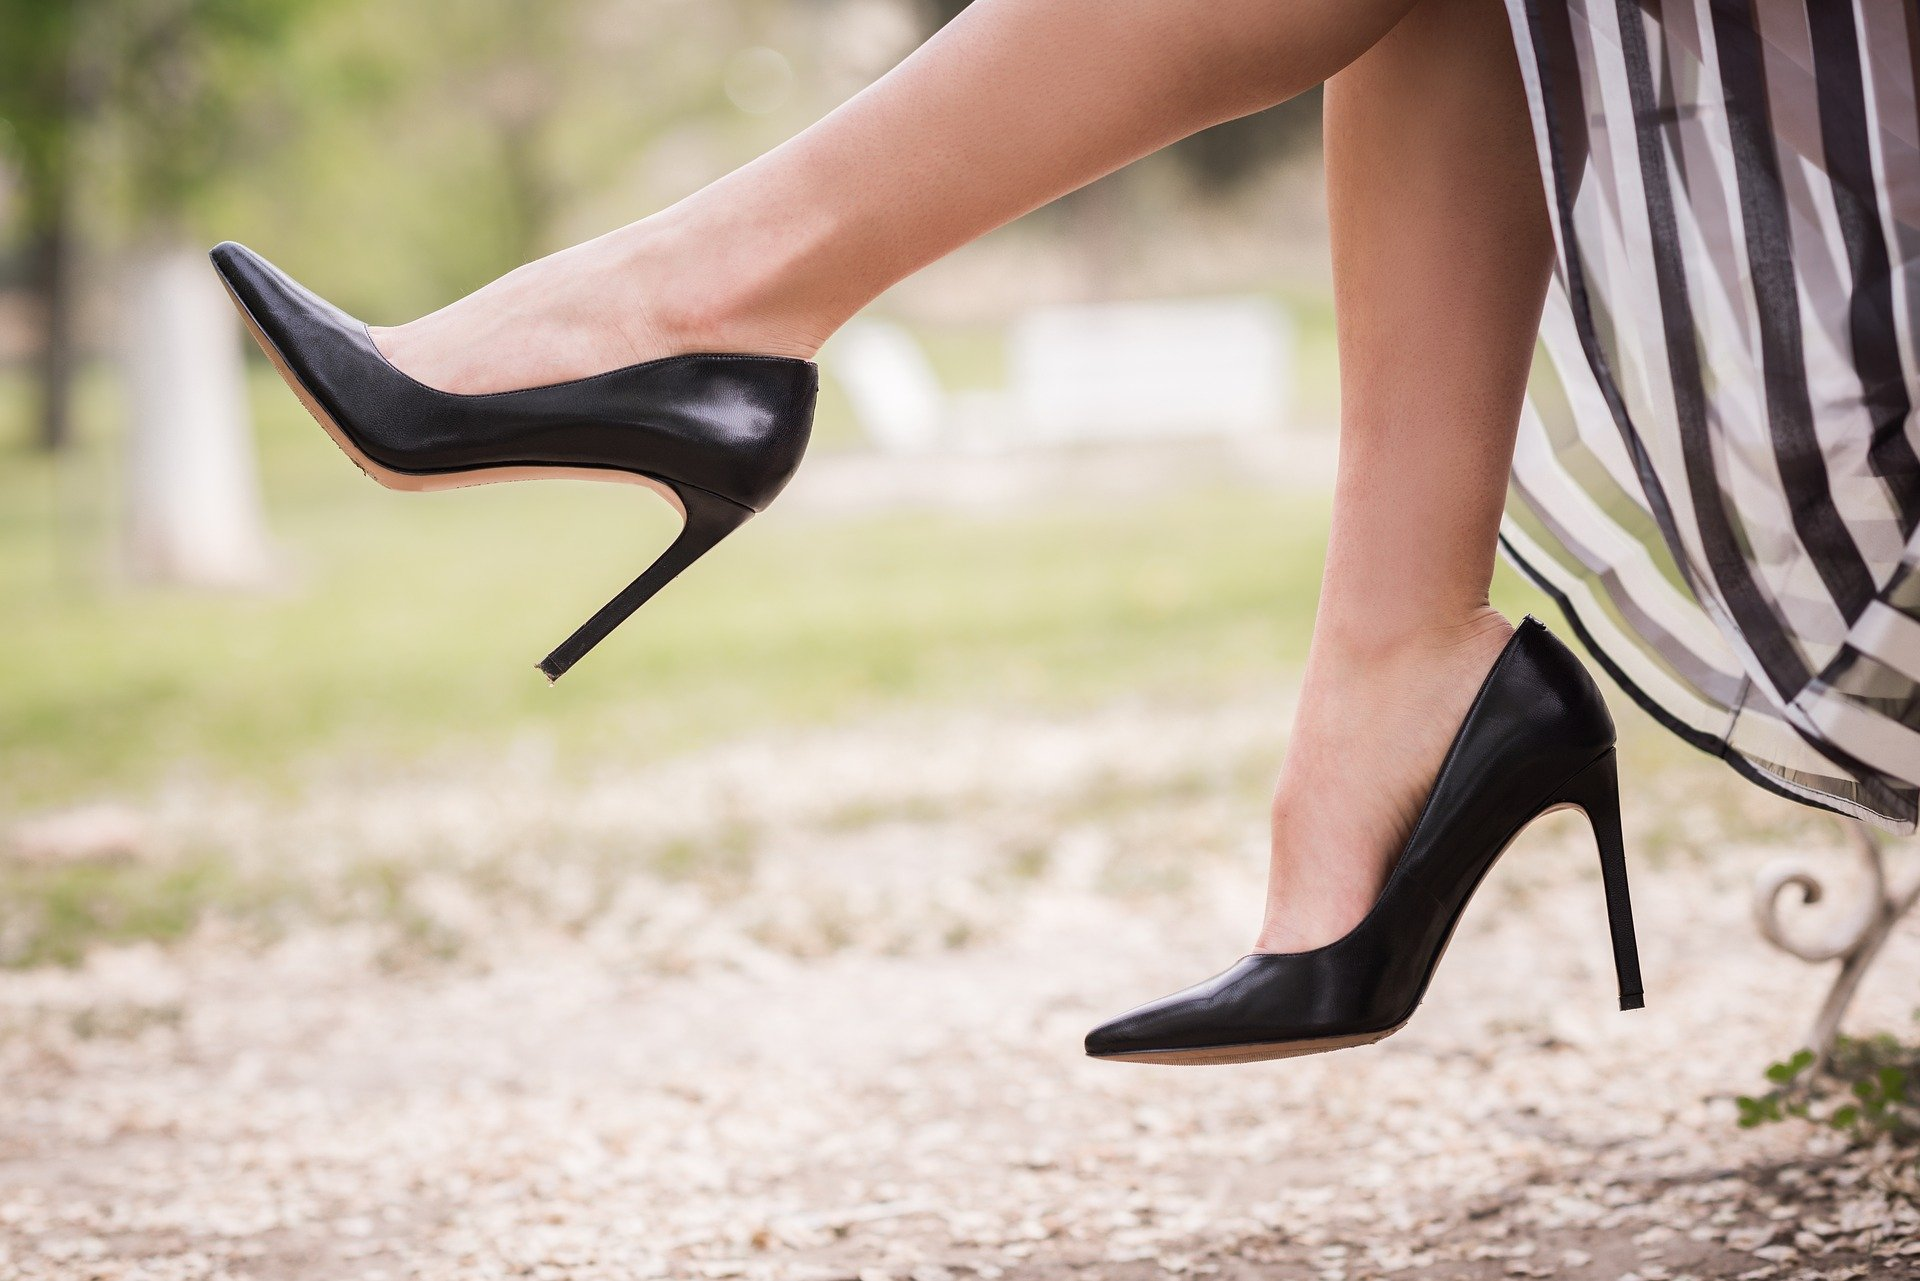 How shoe size can help hire for Values Fit